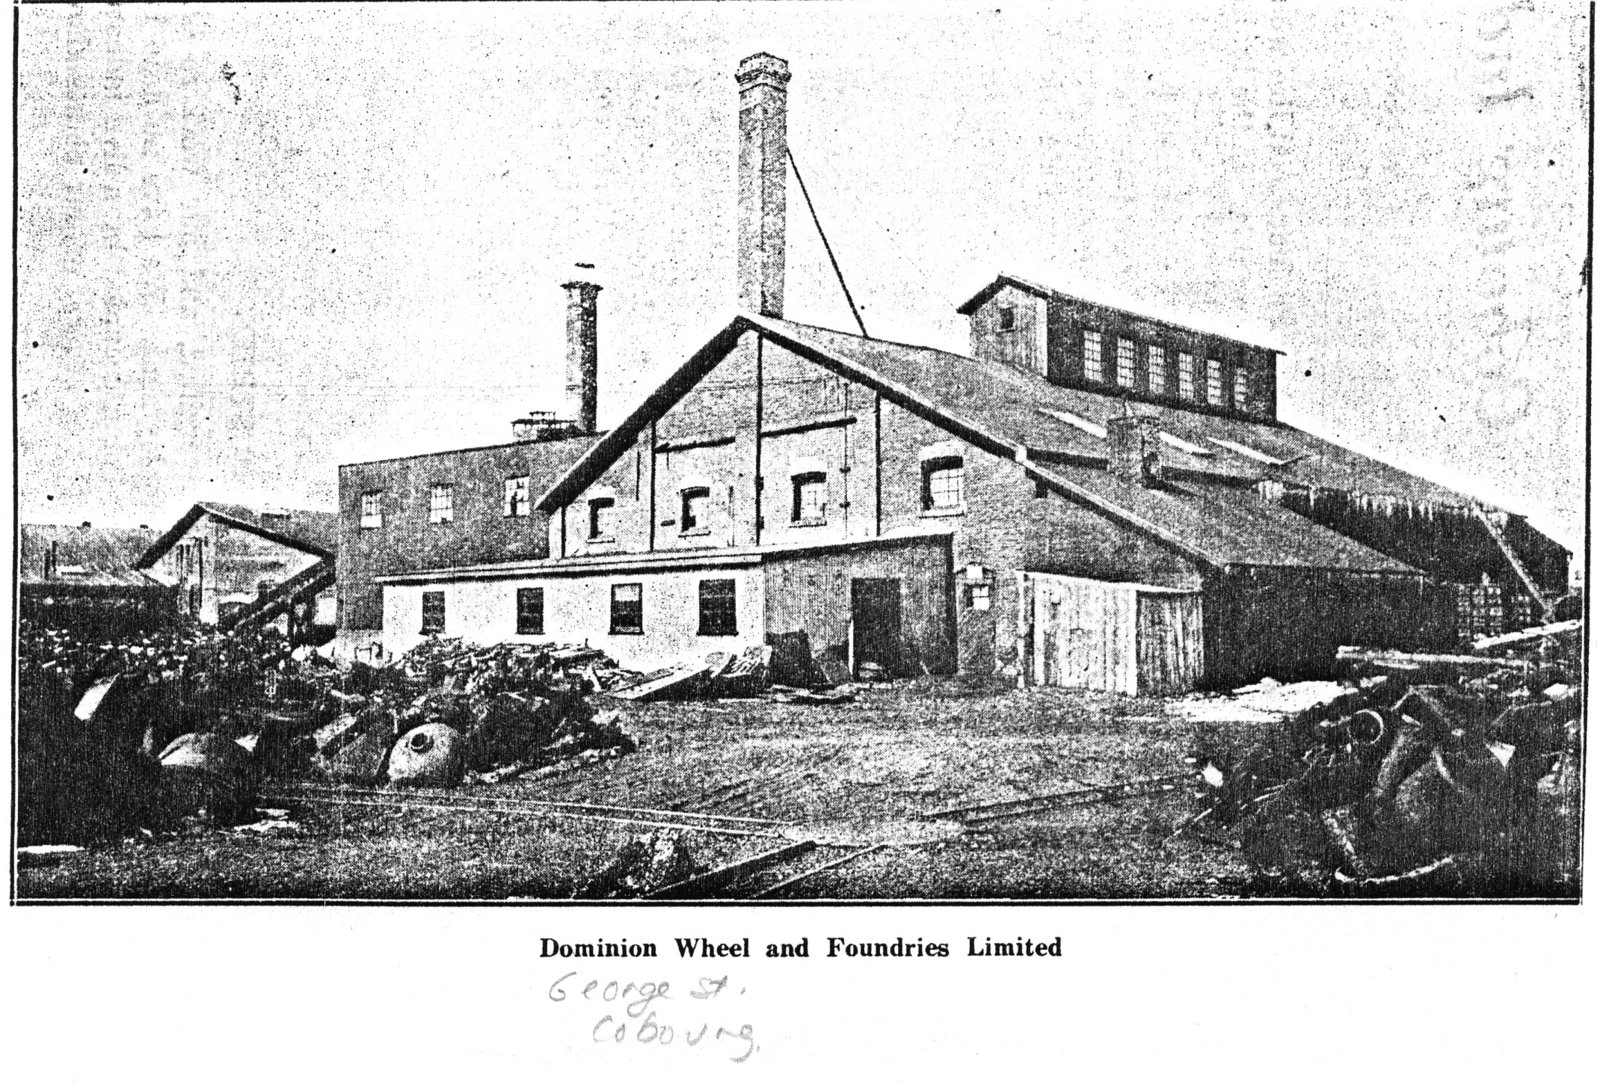 Dominion Wheel and Foundries Limited